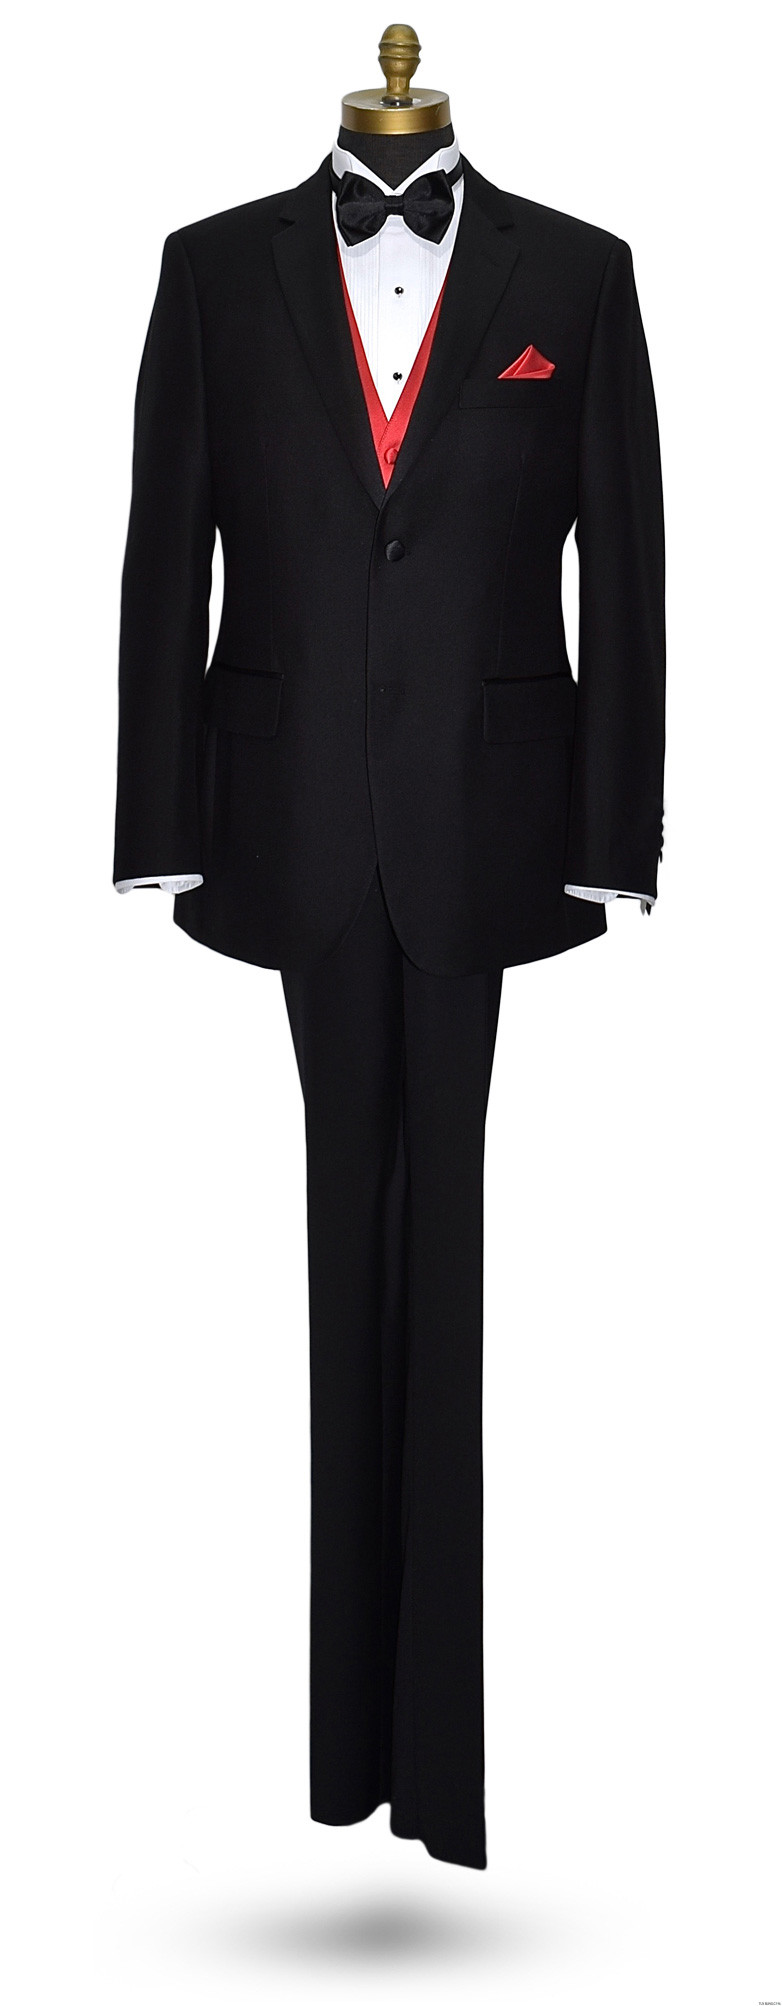 men's black San Miguel tuxedo with red tuxedo vest and red pocket handkerchief